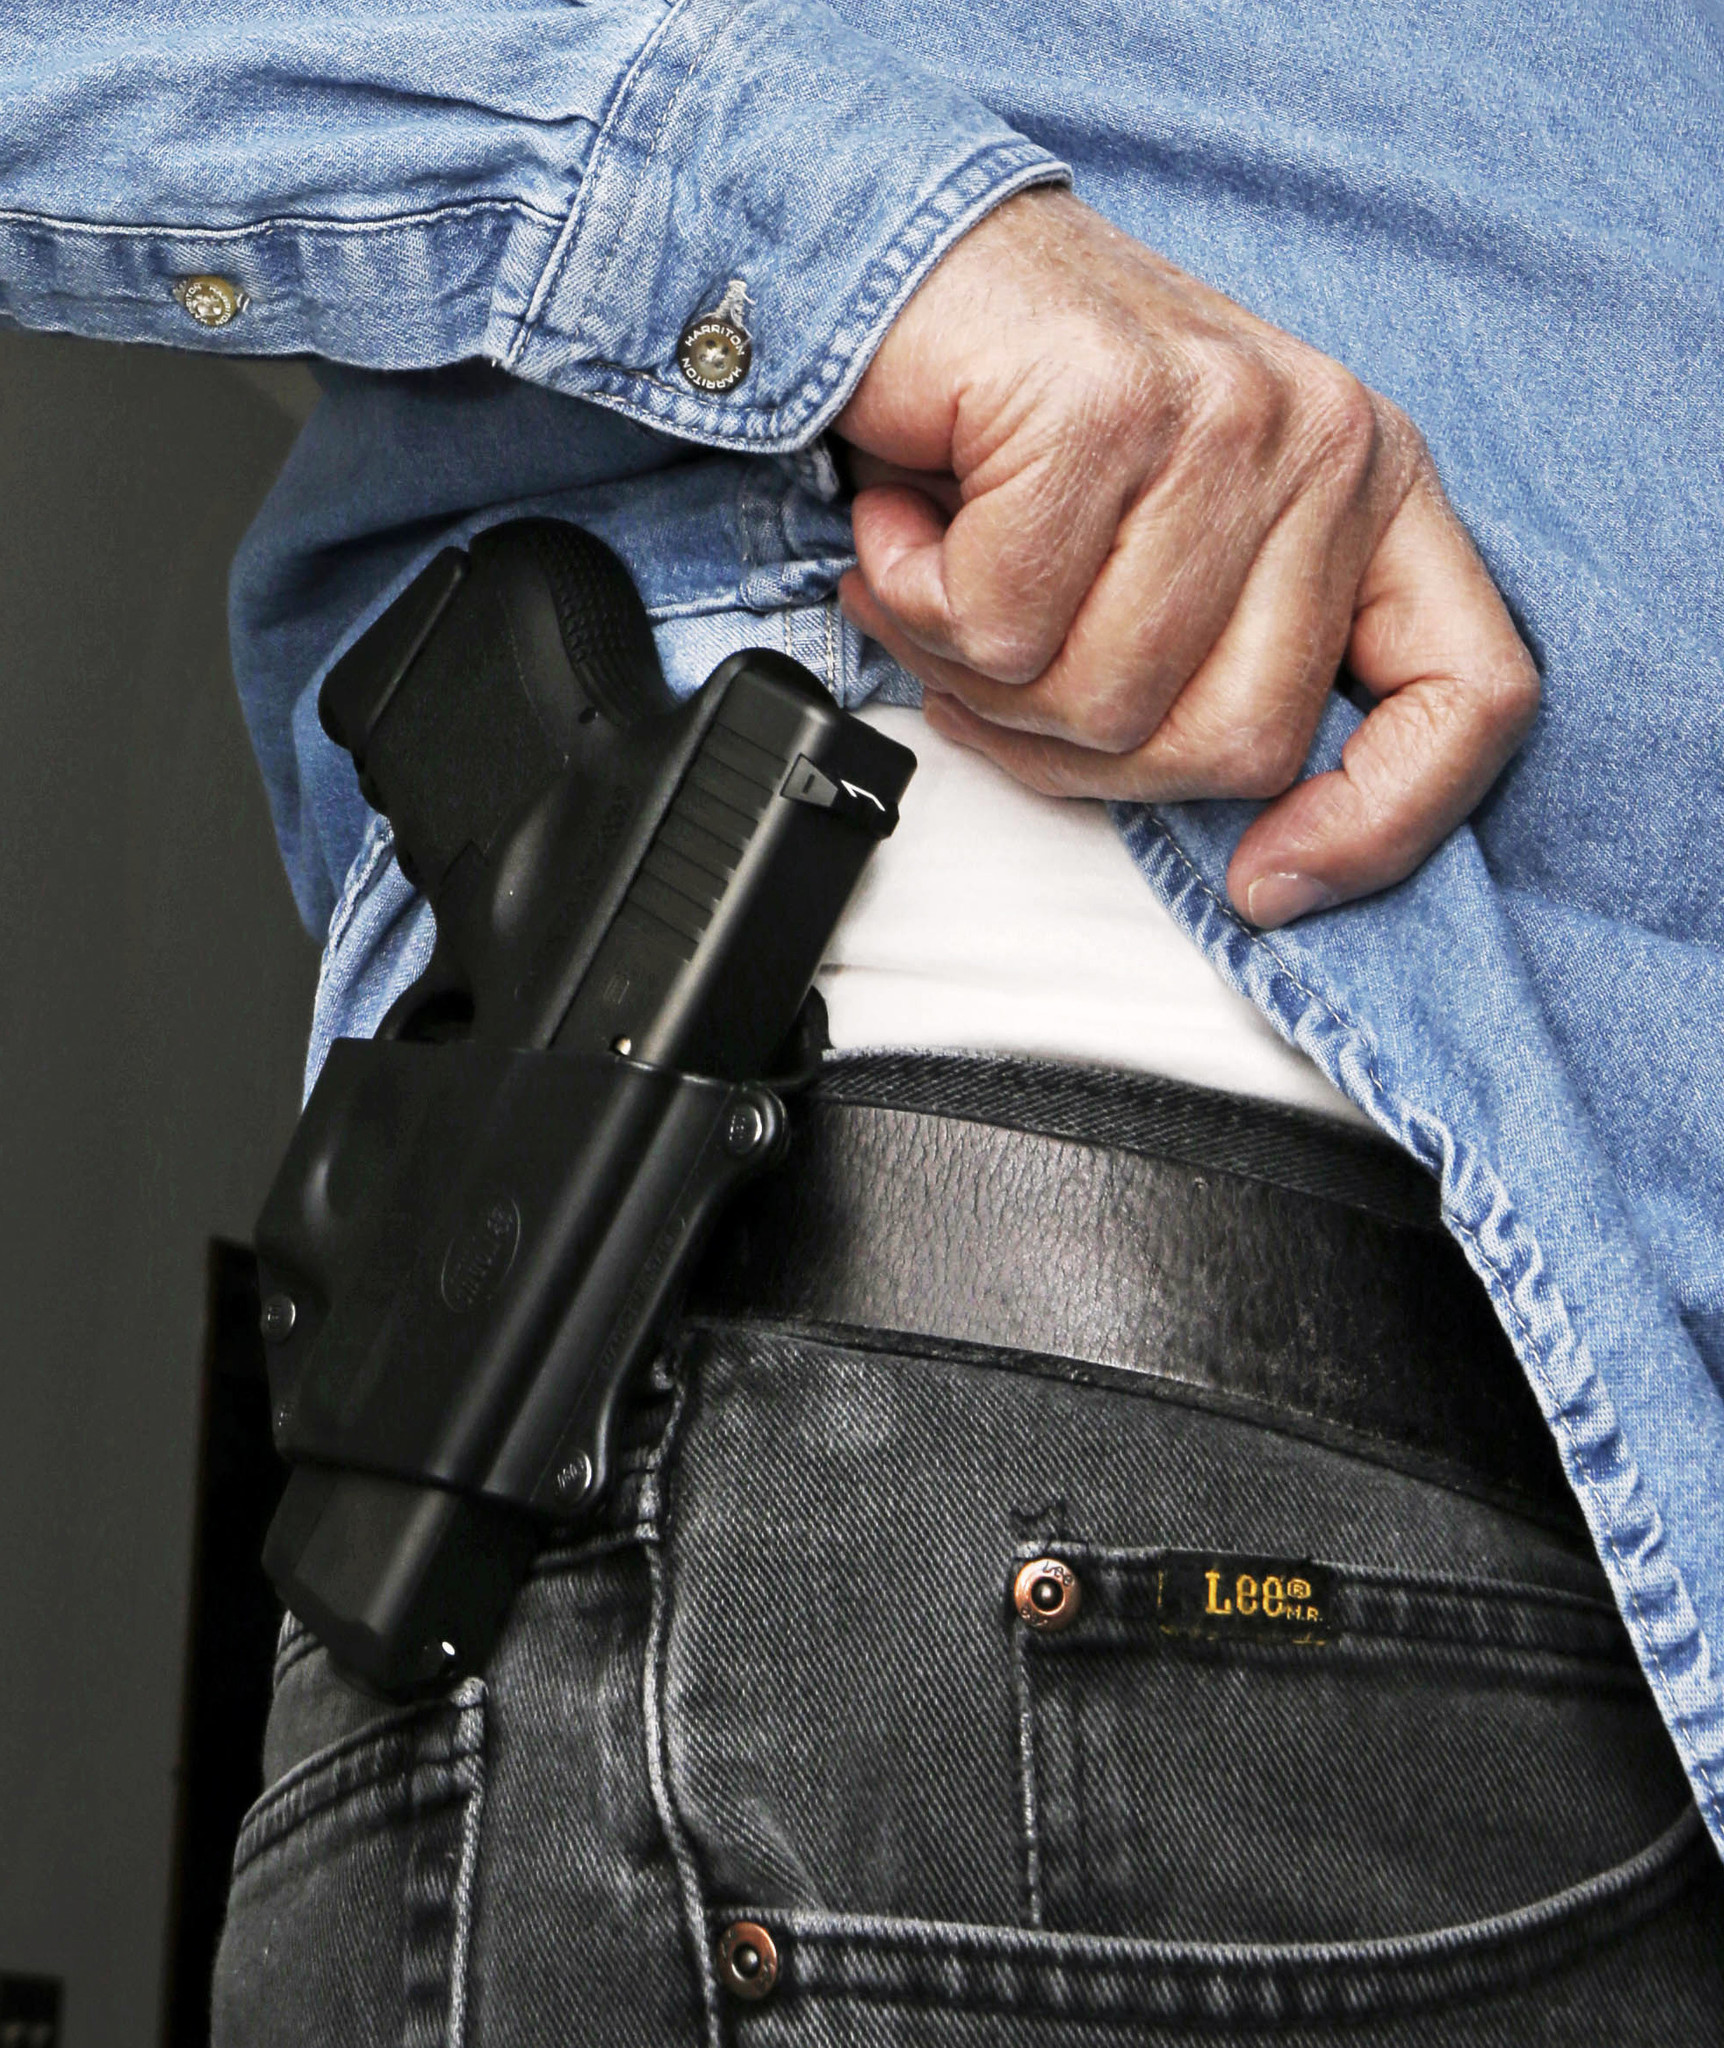 Supreme Court won't hear a California gun case, leaving in place the state's strict limits on concealed weapons